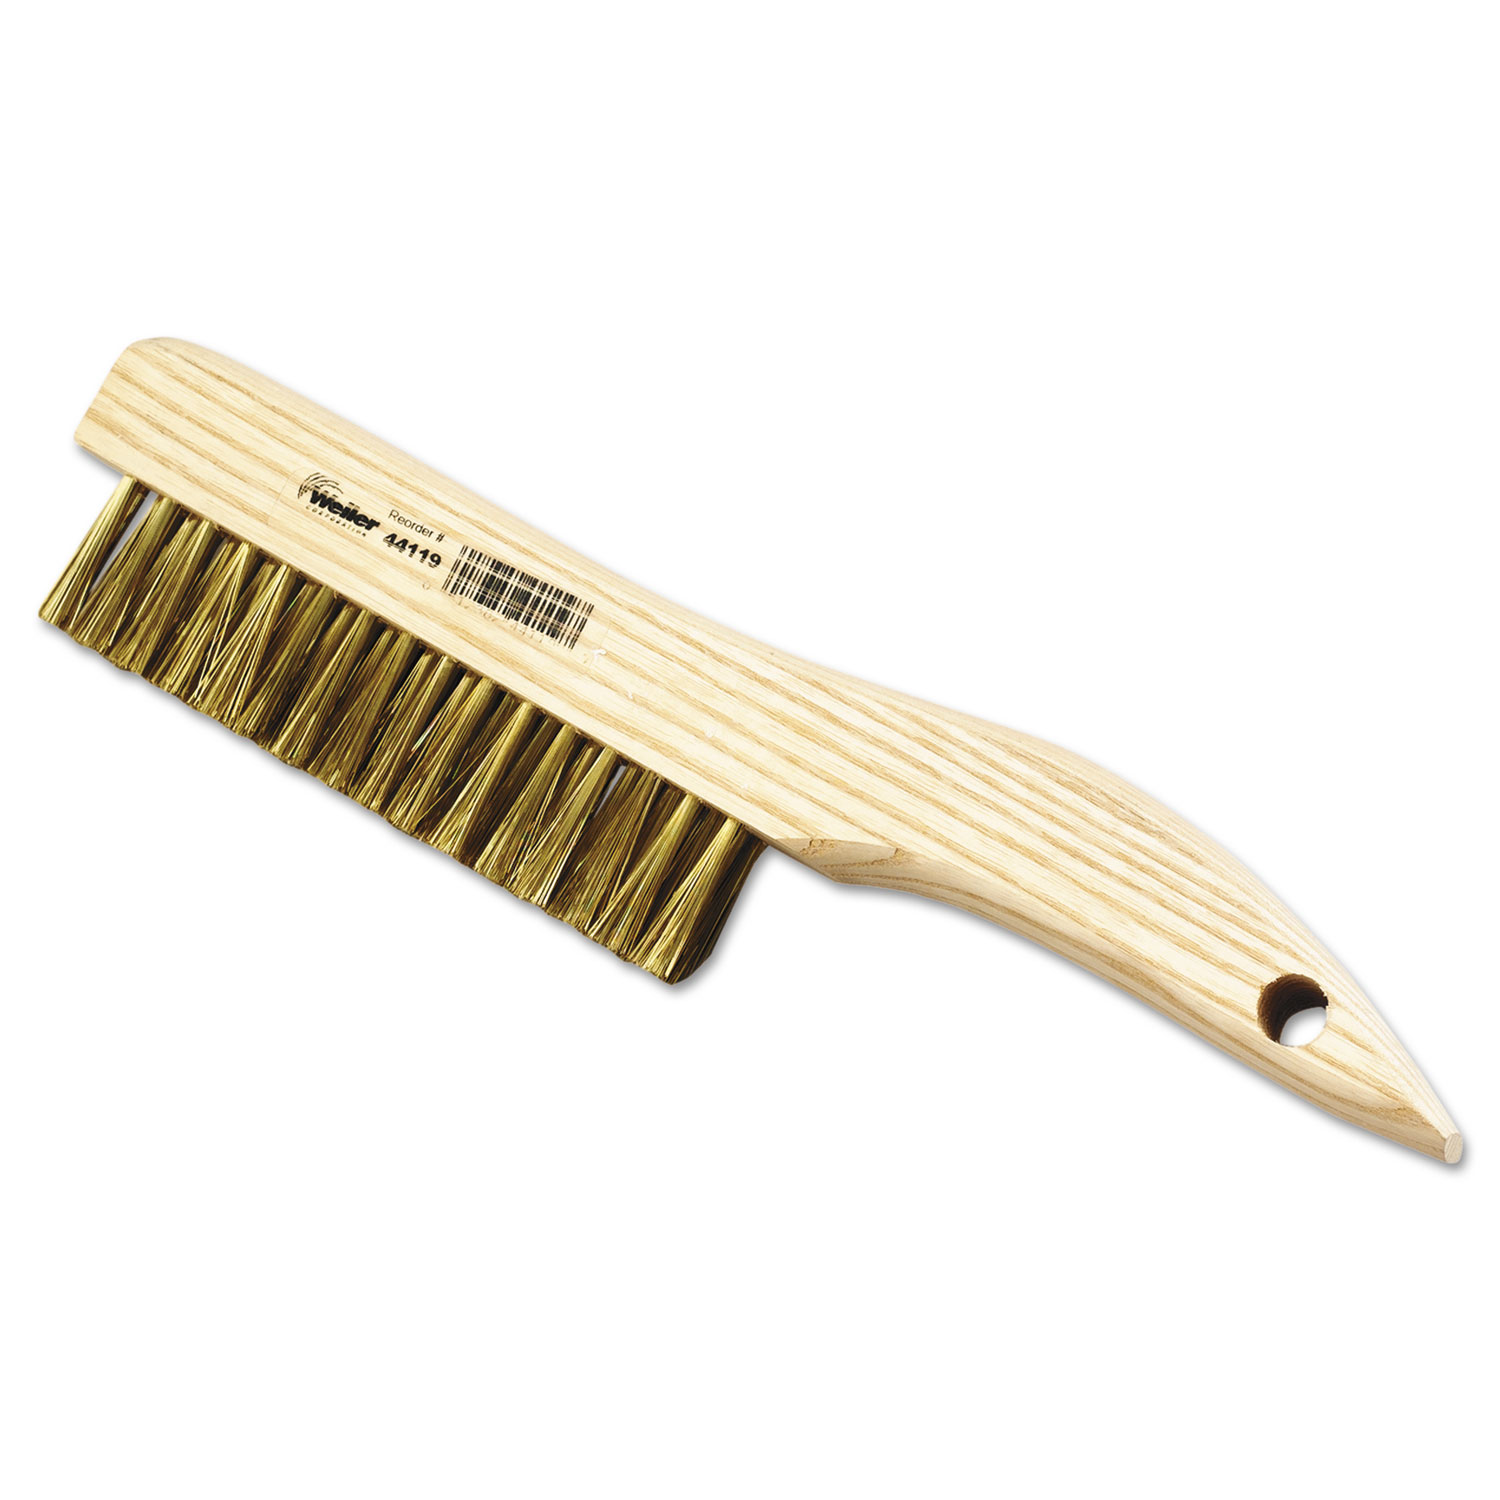 PSH-46-B Plater's Brush, .005 Wire, Brass